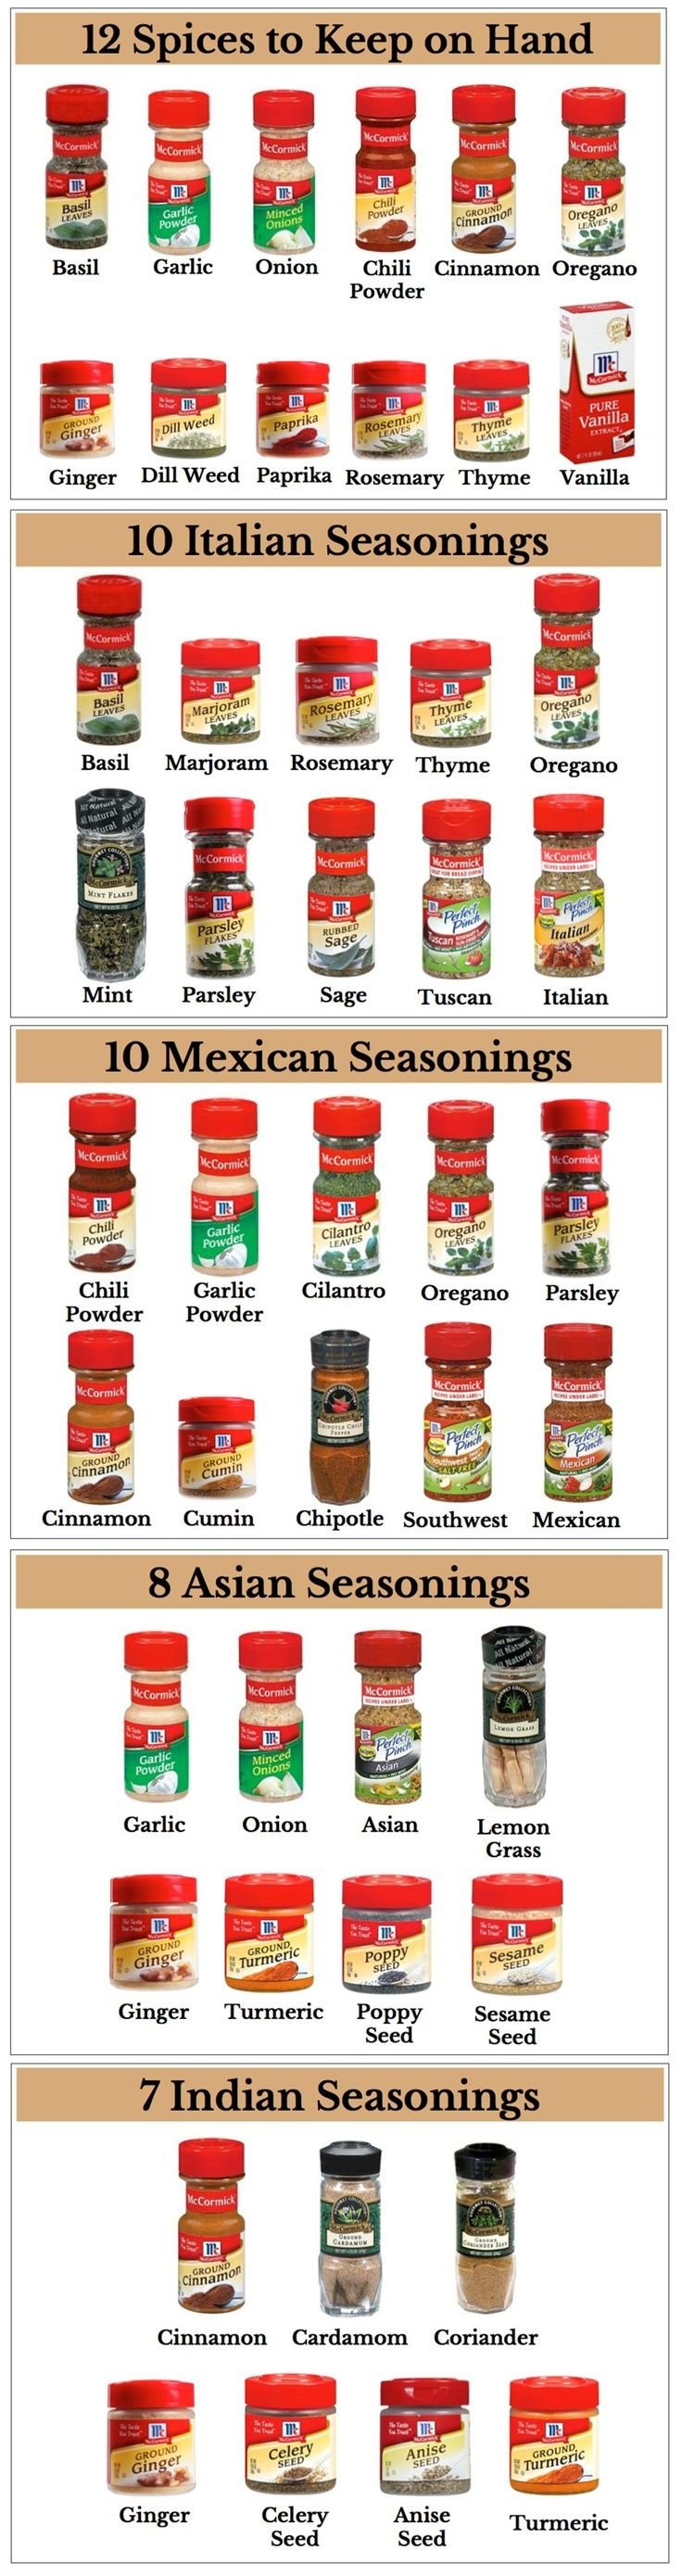 Seasoning is a great way to add taste, but no calories. Keep this in mind when cooking on a diet!